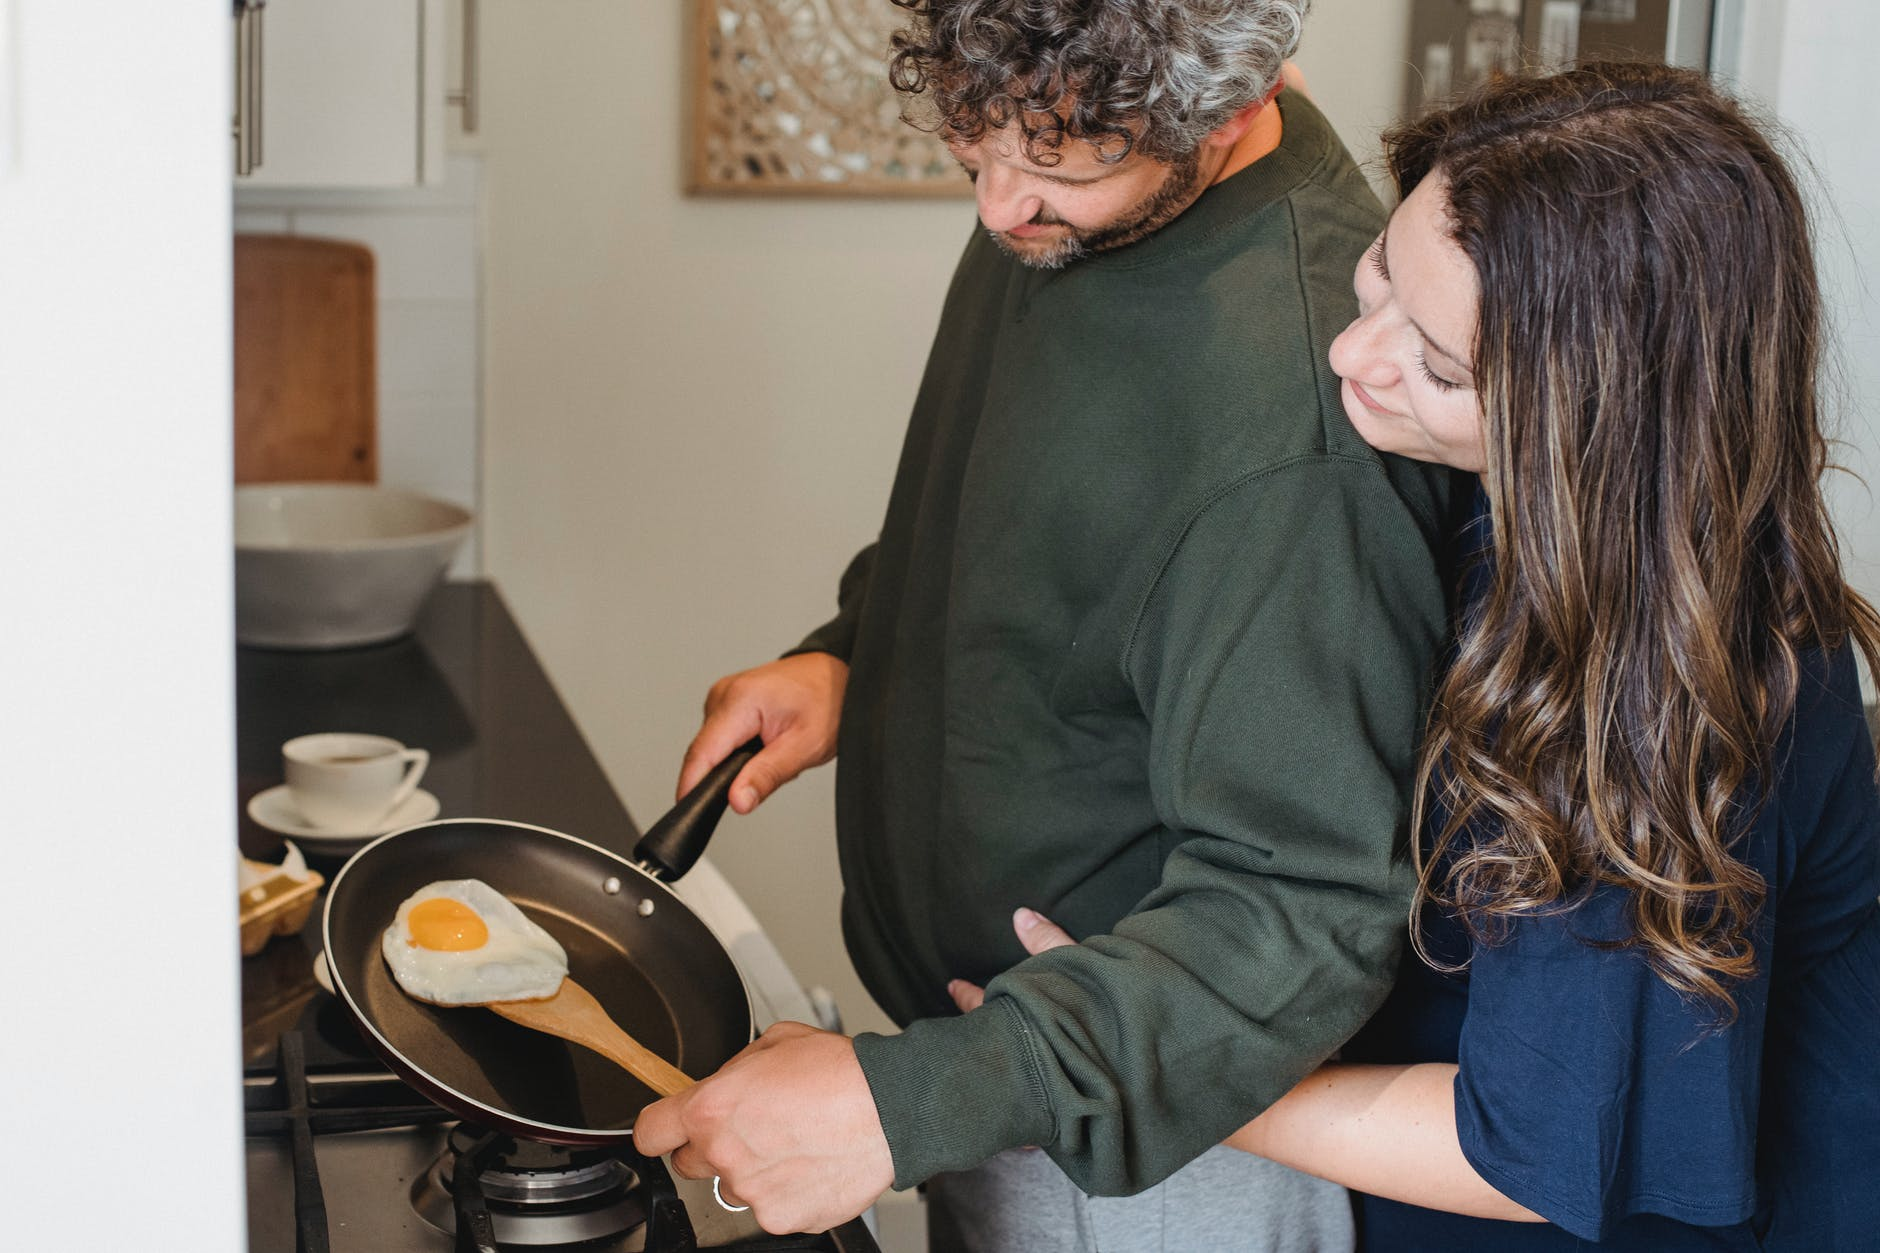 cheerful couple hugging while cooking egg for breakfast